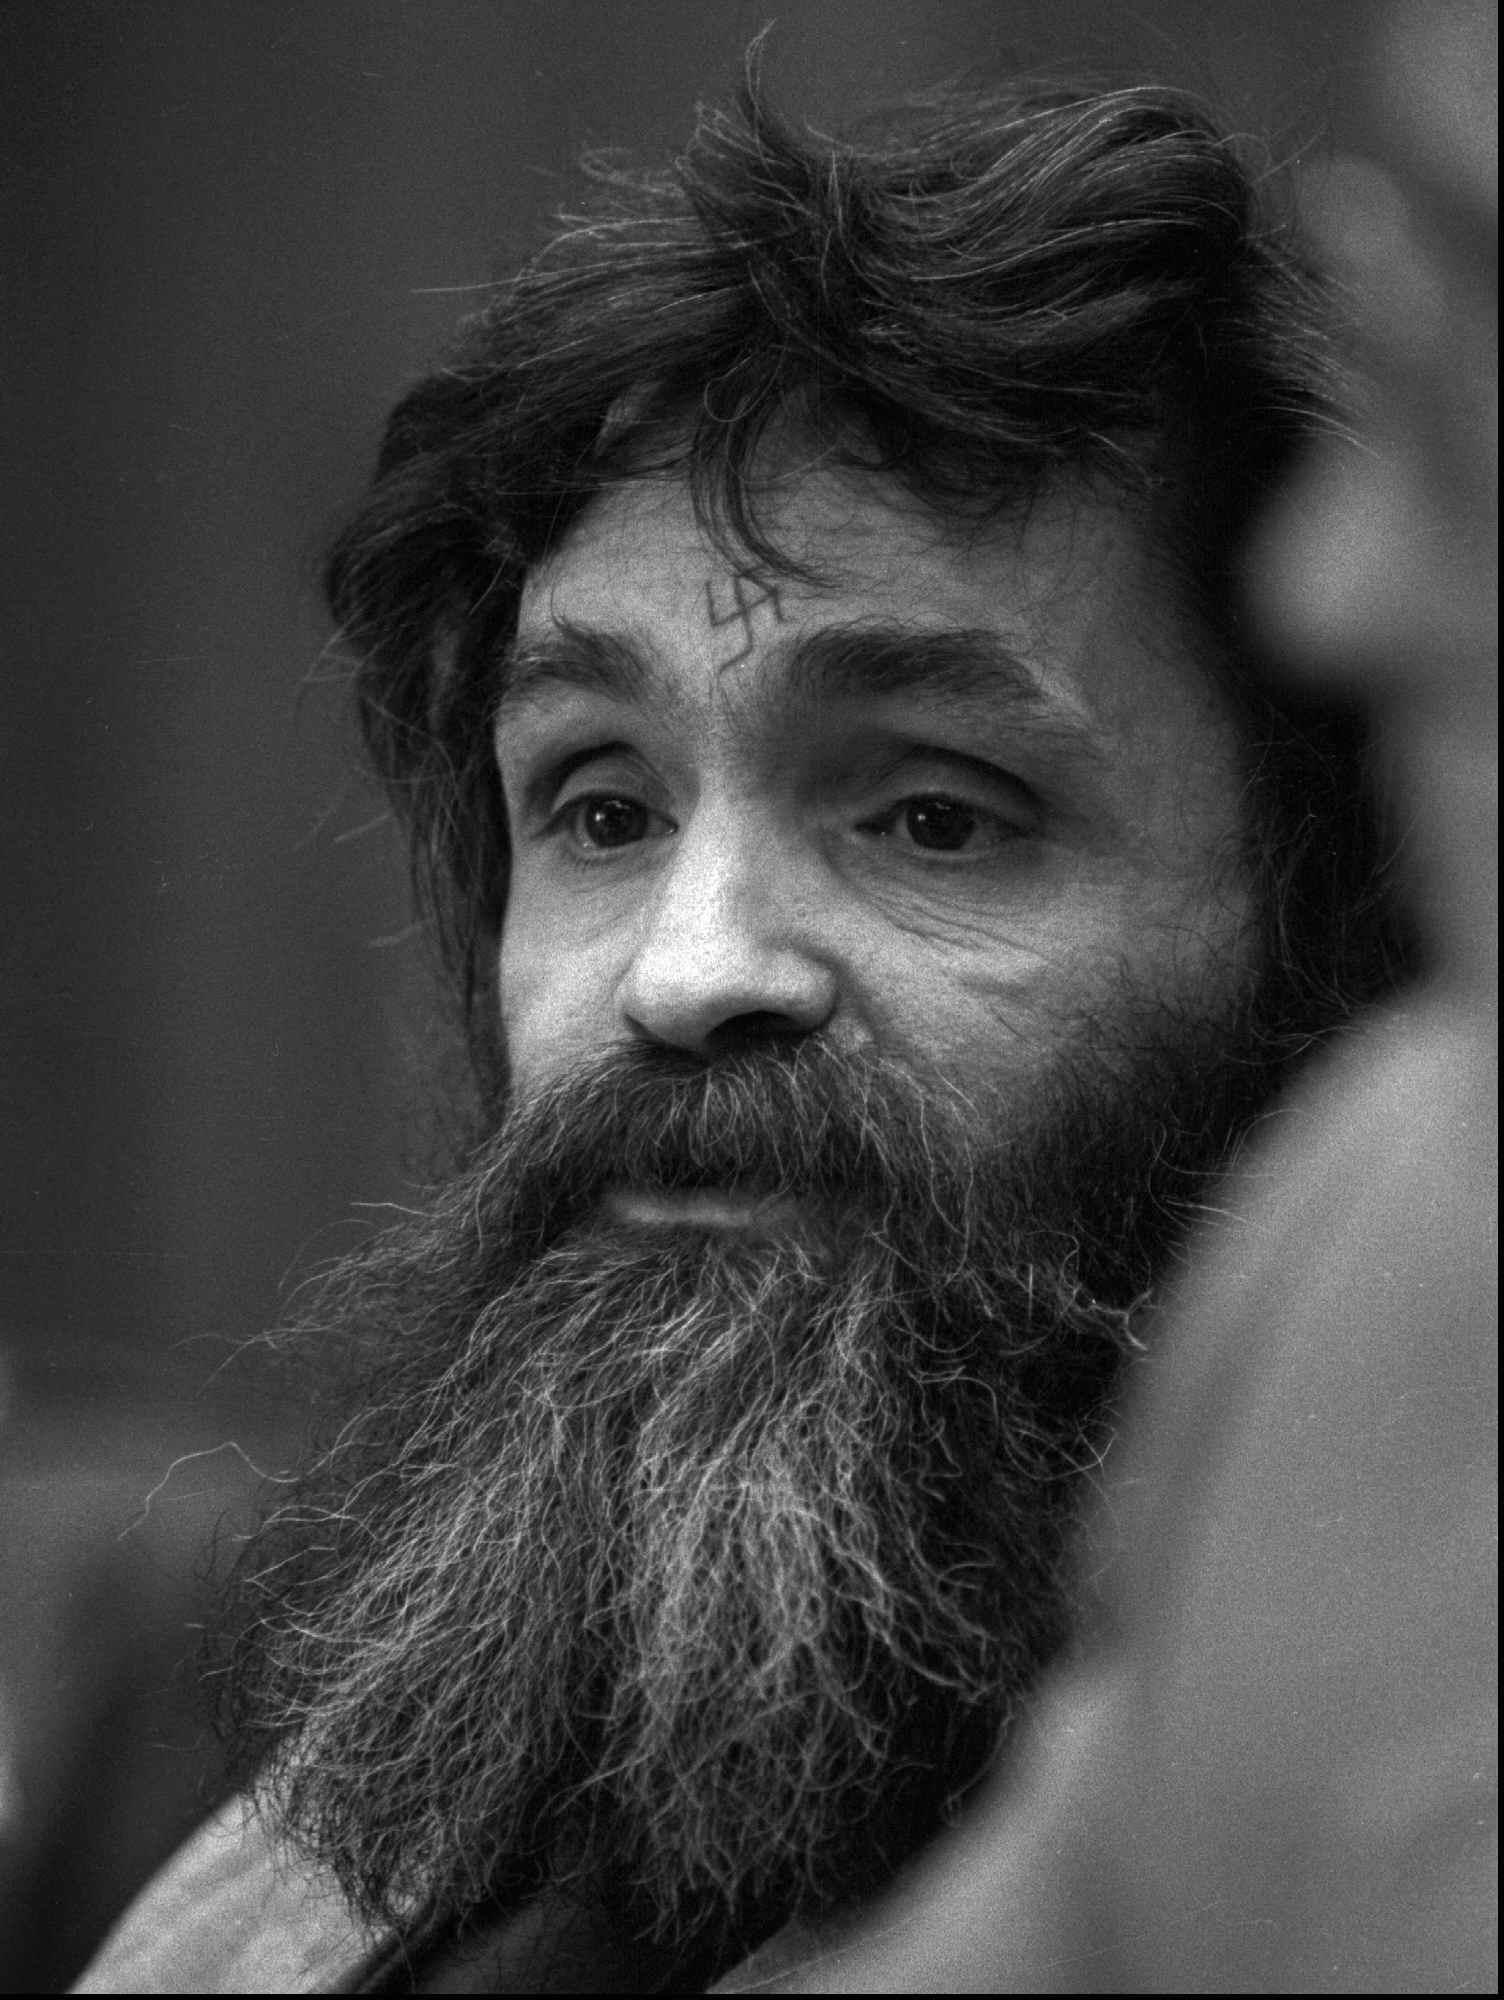 Charles Manson Cult Leader And Serial Killer Who Terrified Nation